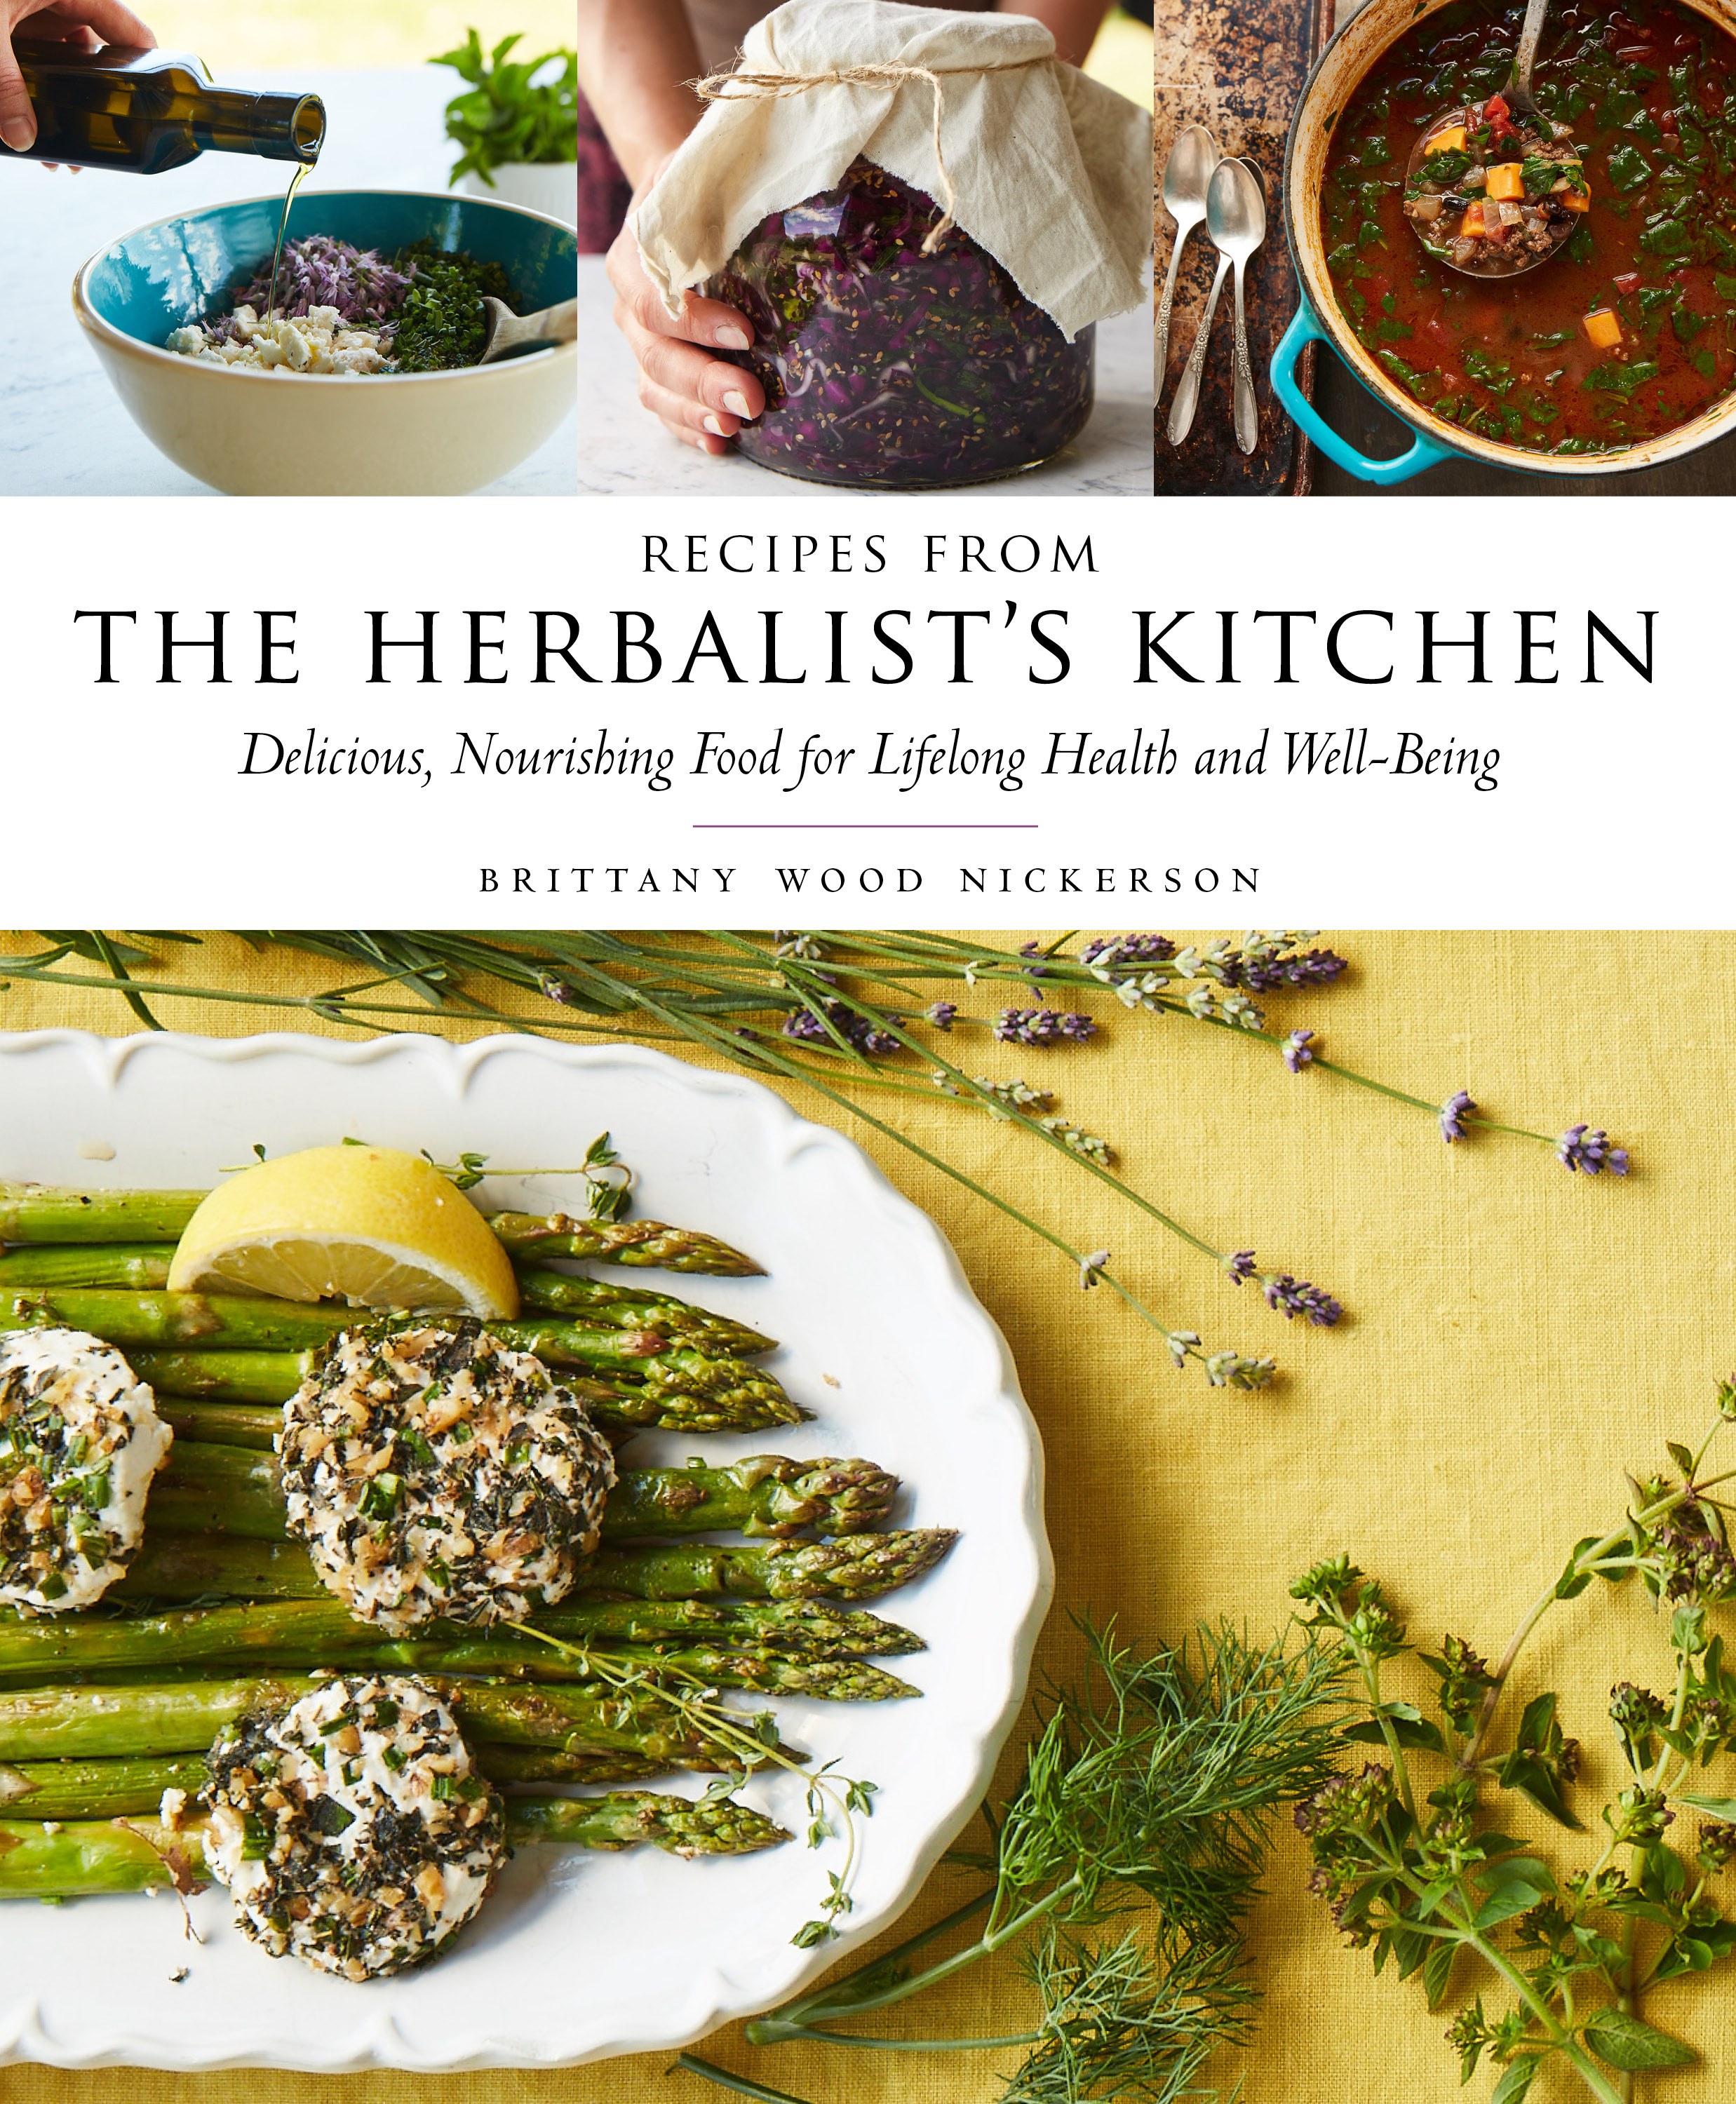 Recipes from the Herbalist's Kitchen Delicious, Nourishing Food for Lifelong Health and Well-Being - Brittany Wood Nickerson